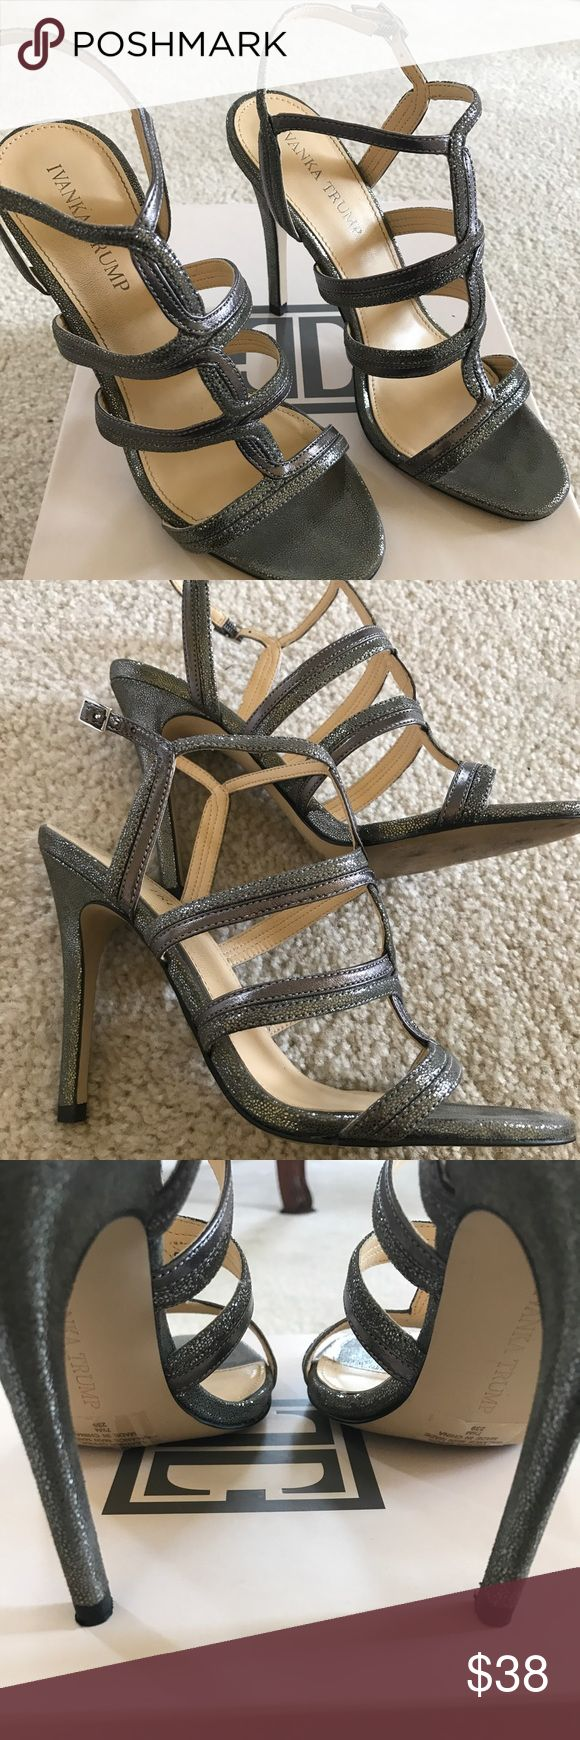 Ivanka Trump pewter/silver strappy sandals Ivanka Trump pewter/silver strappy sandals Sz 7.5 Ivanka Trump Shoes Heels